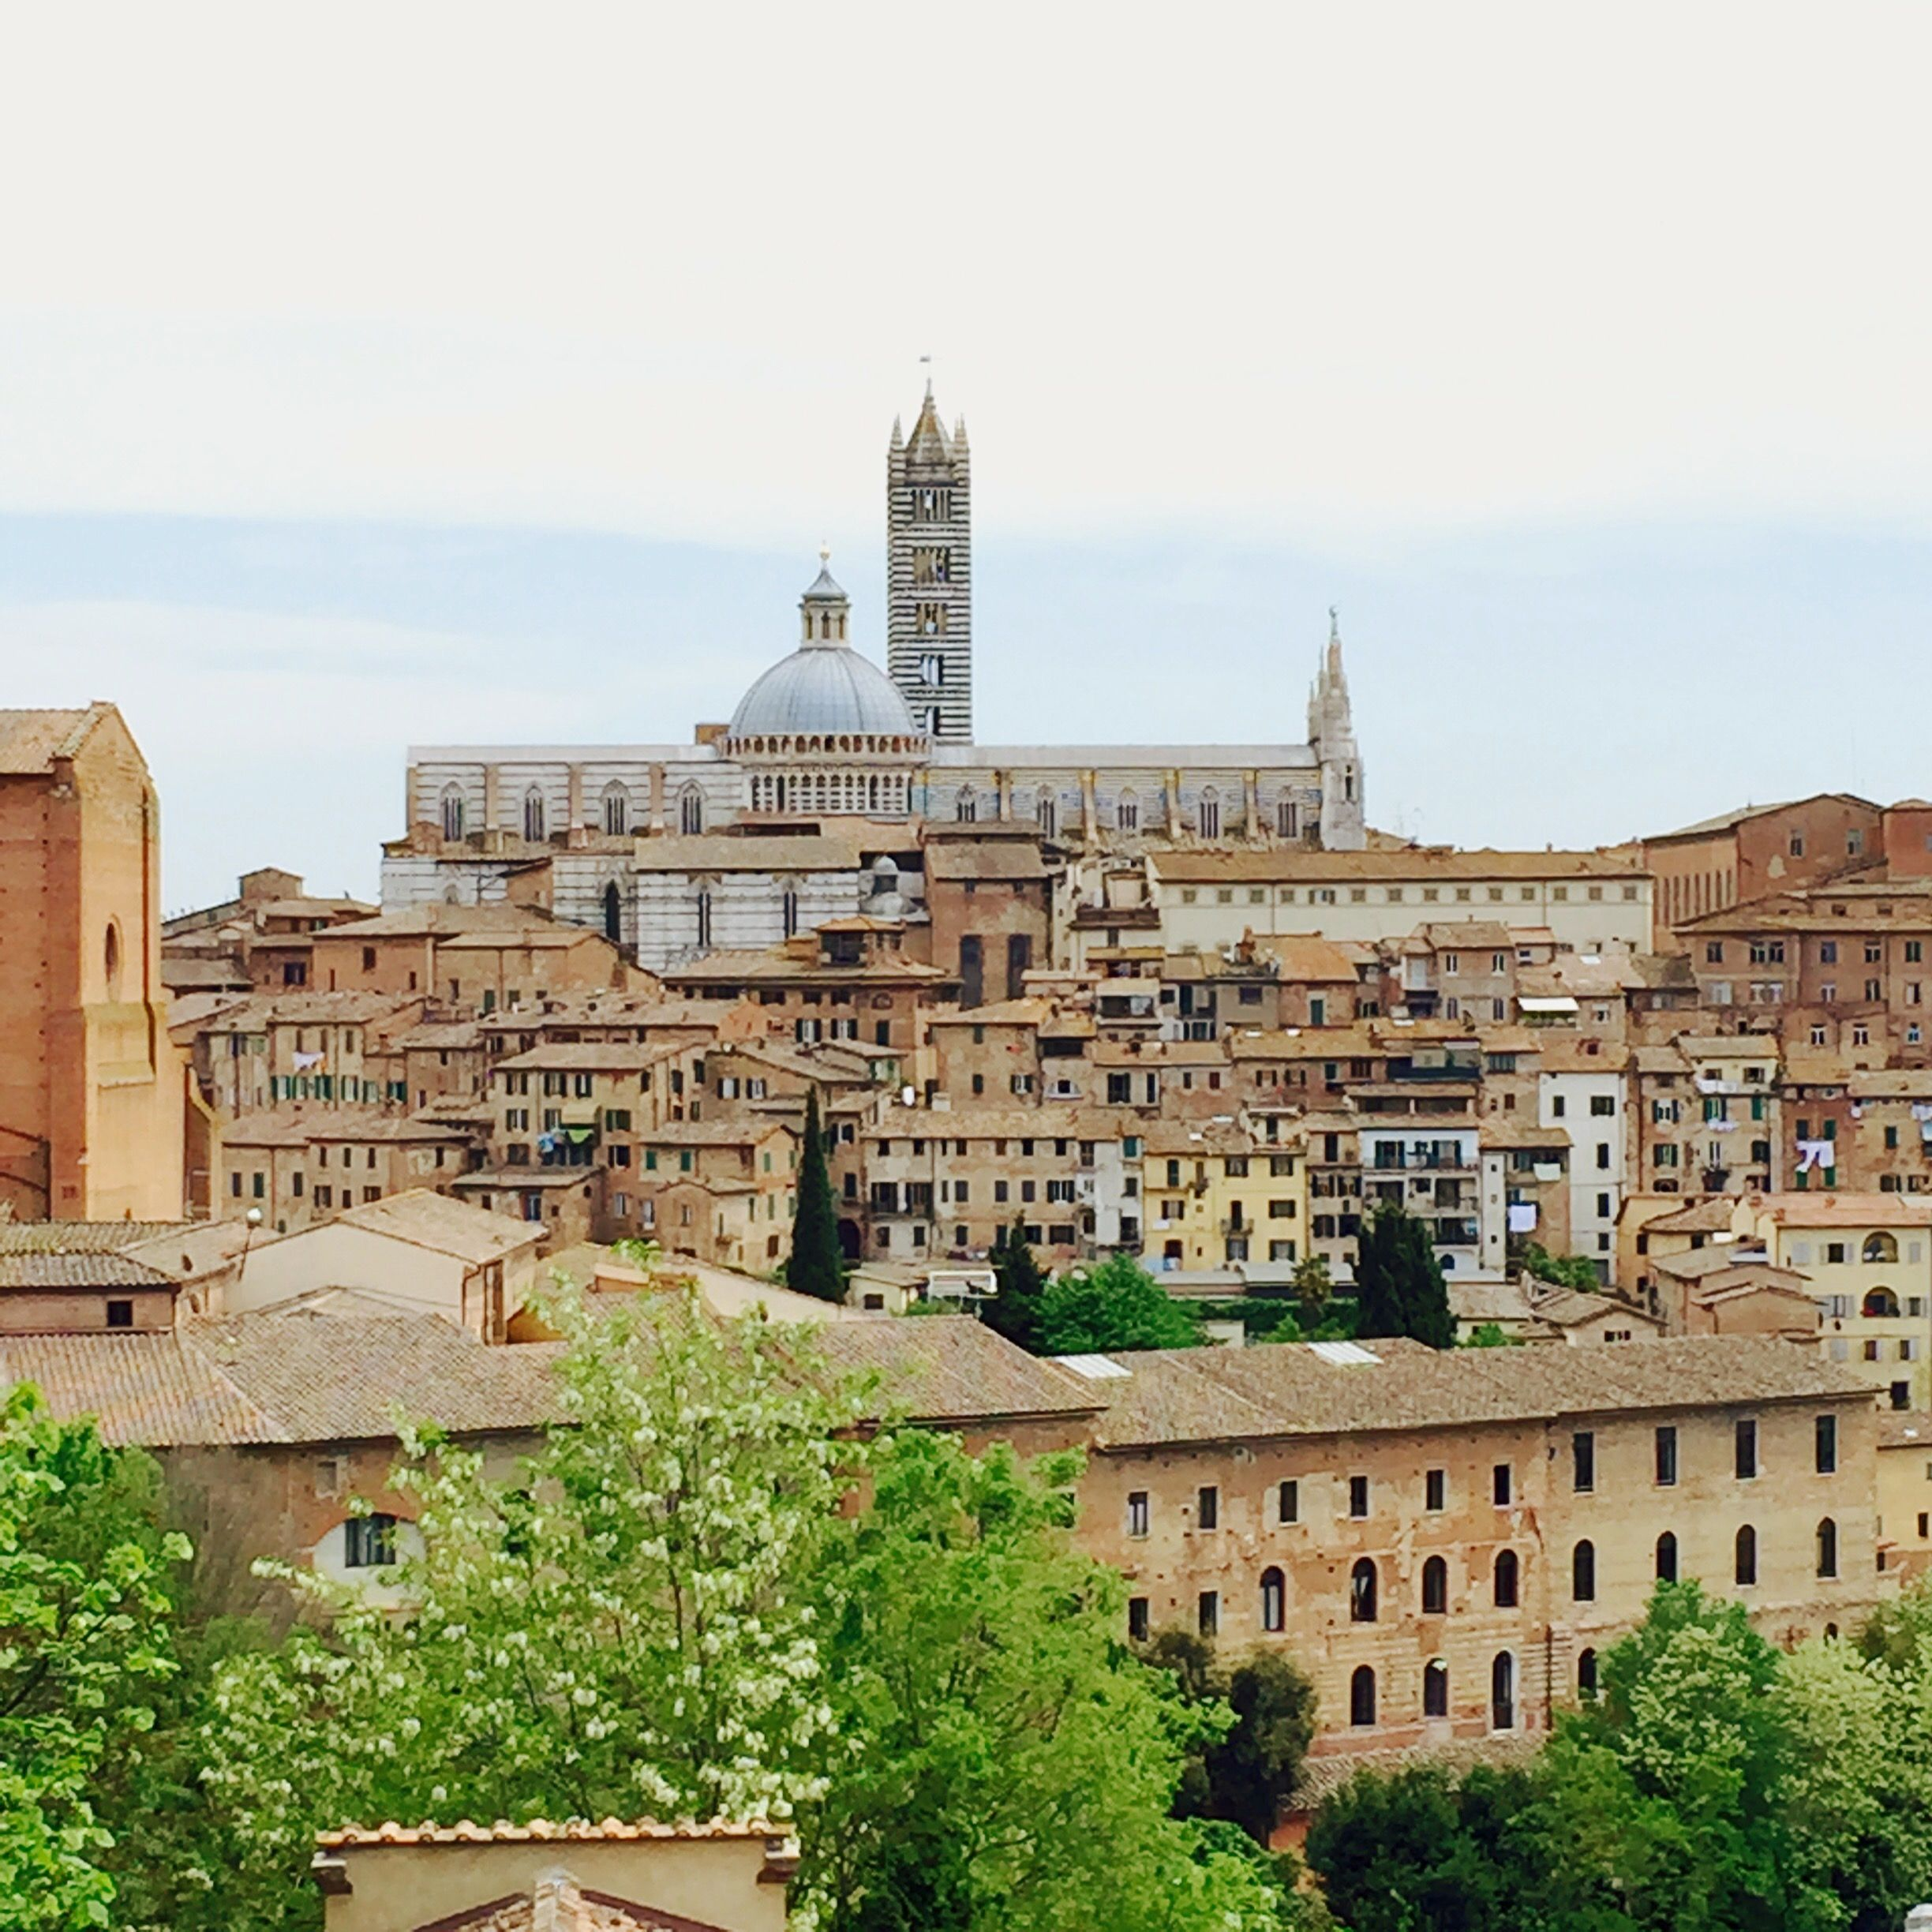 Siena Cathedral standing out among the city.